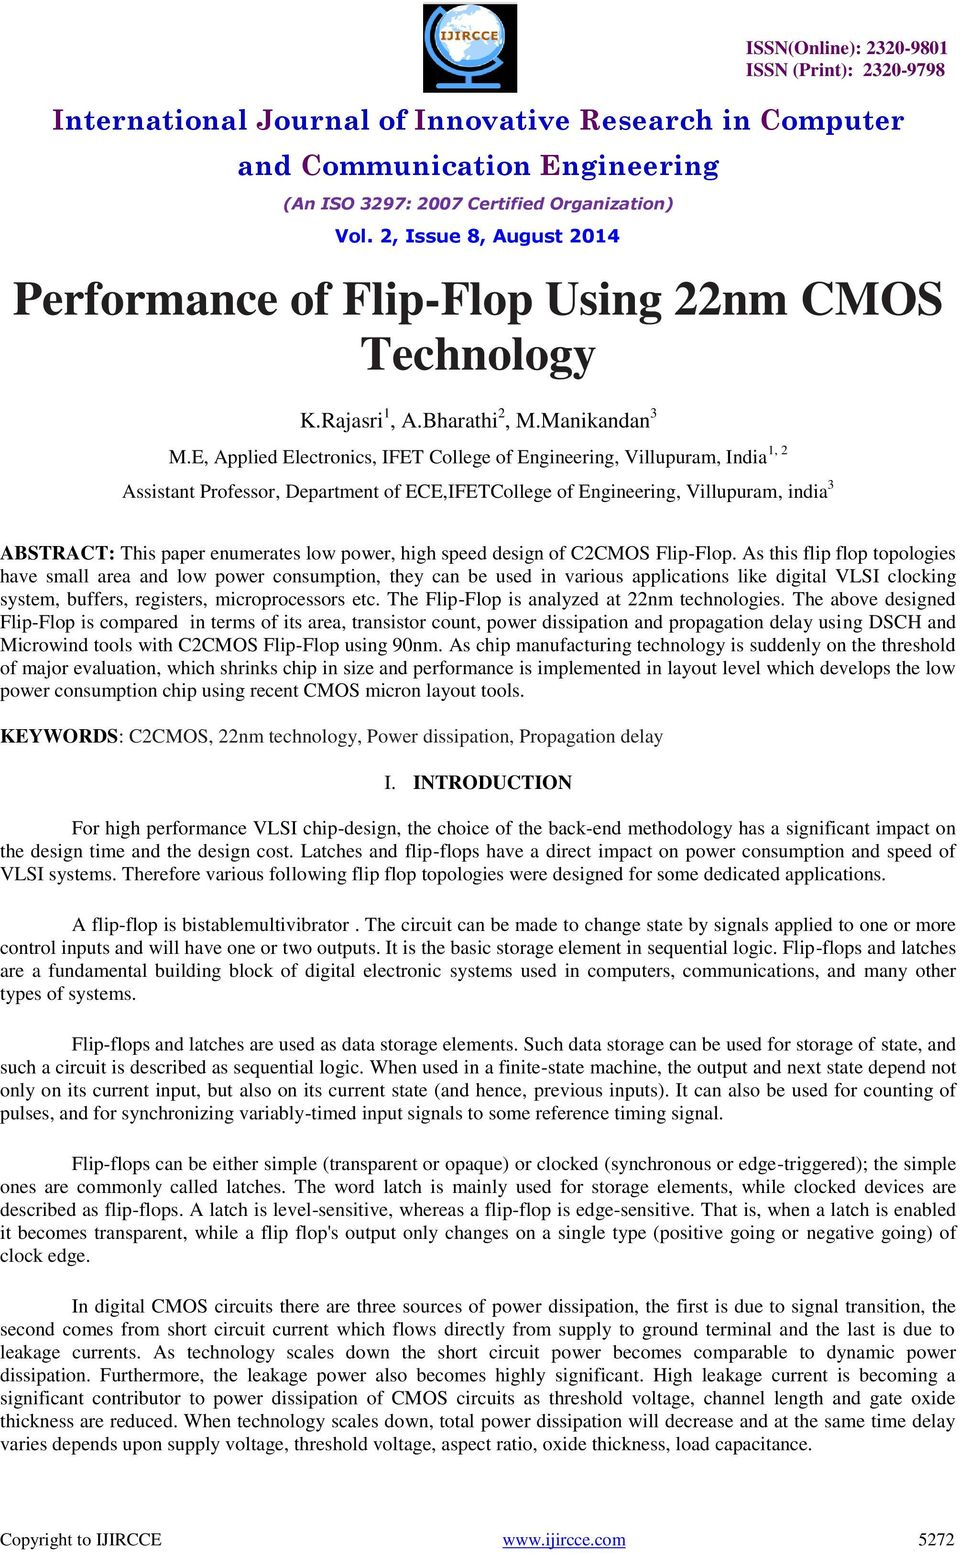 Performance Of Flip Flop Using 22nm Cmos Technology Pdf Microprocessor Dedicated Logic Circuit Power High Speed Design C2cmos